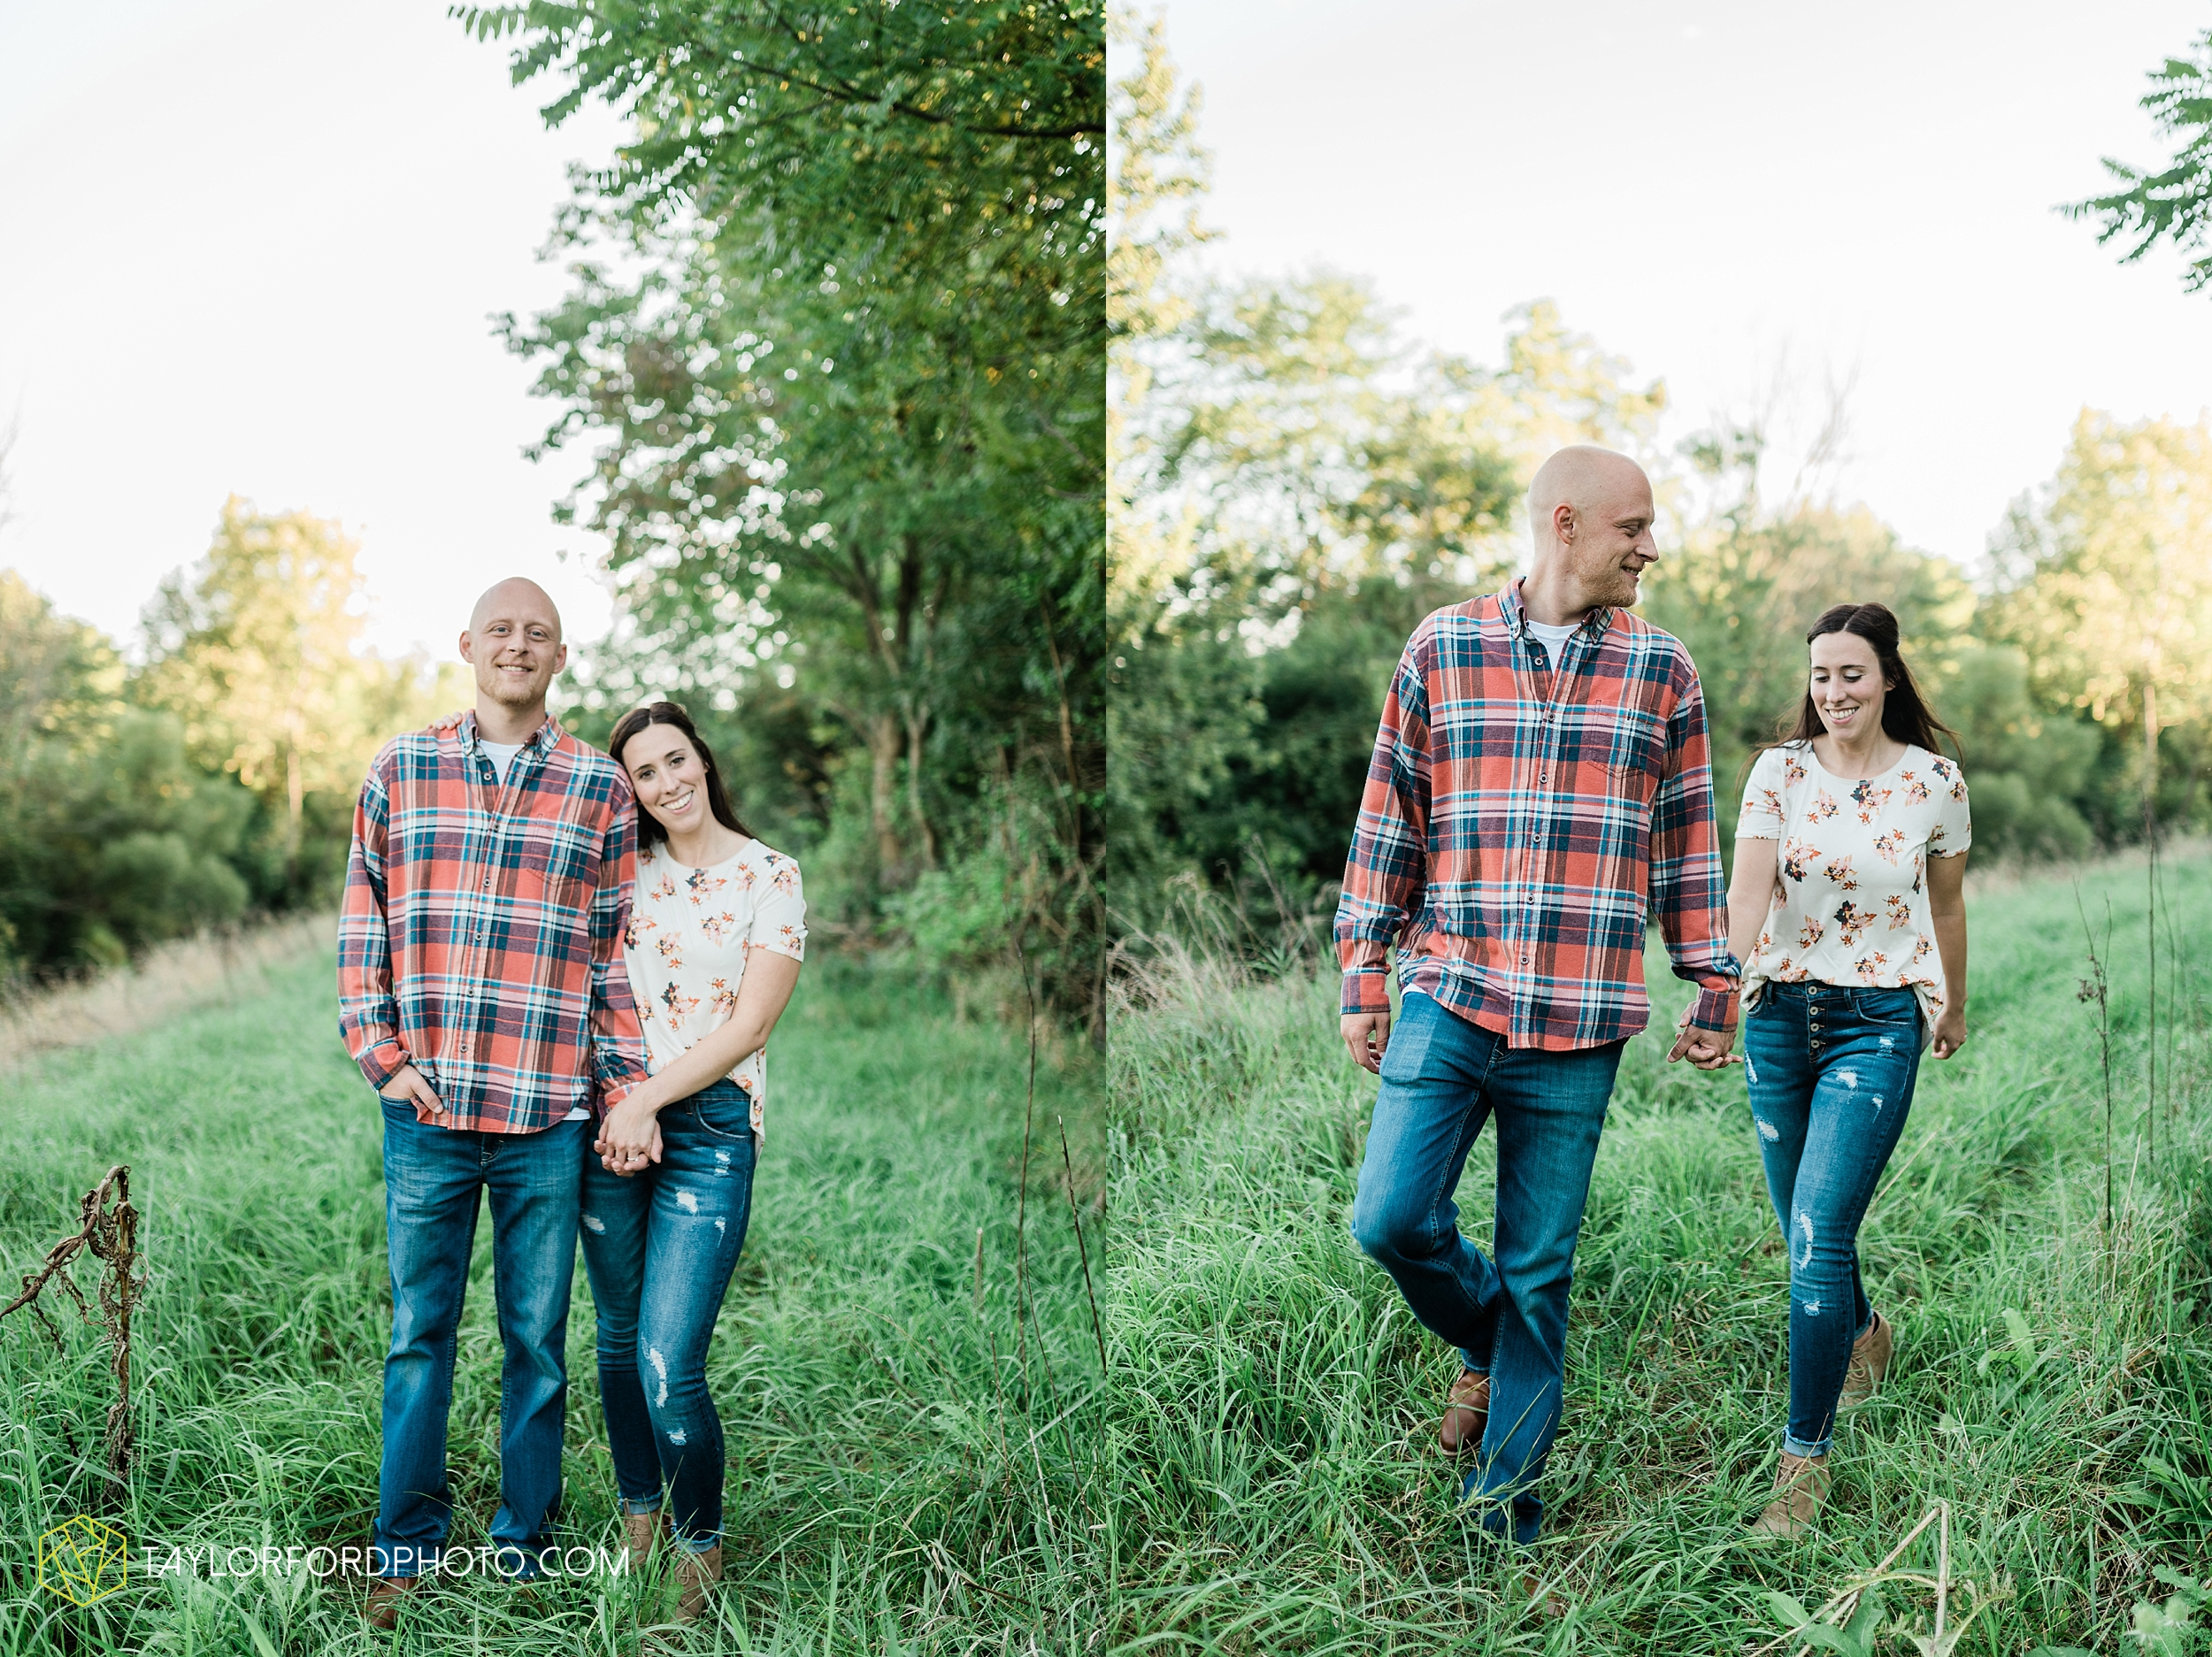 van-wert-ohio-late-summer-engagement-photographer-taylor-ford-photography_0350.jpg